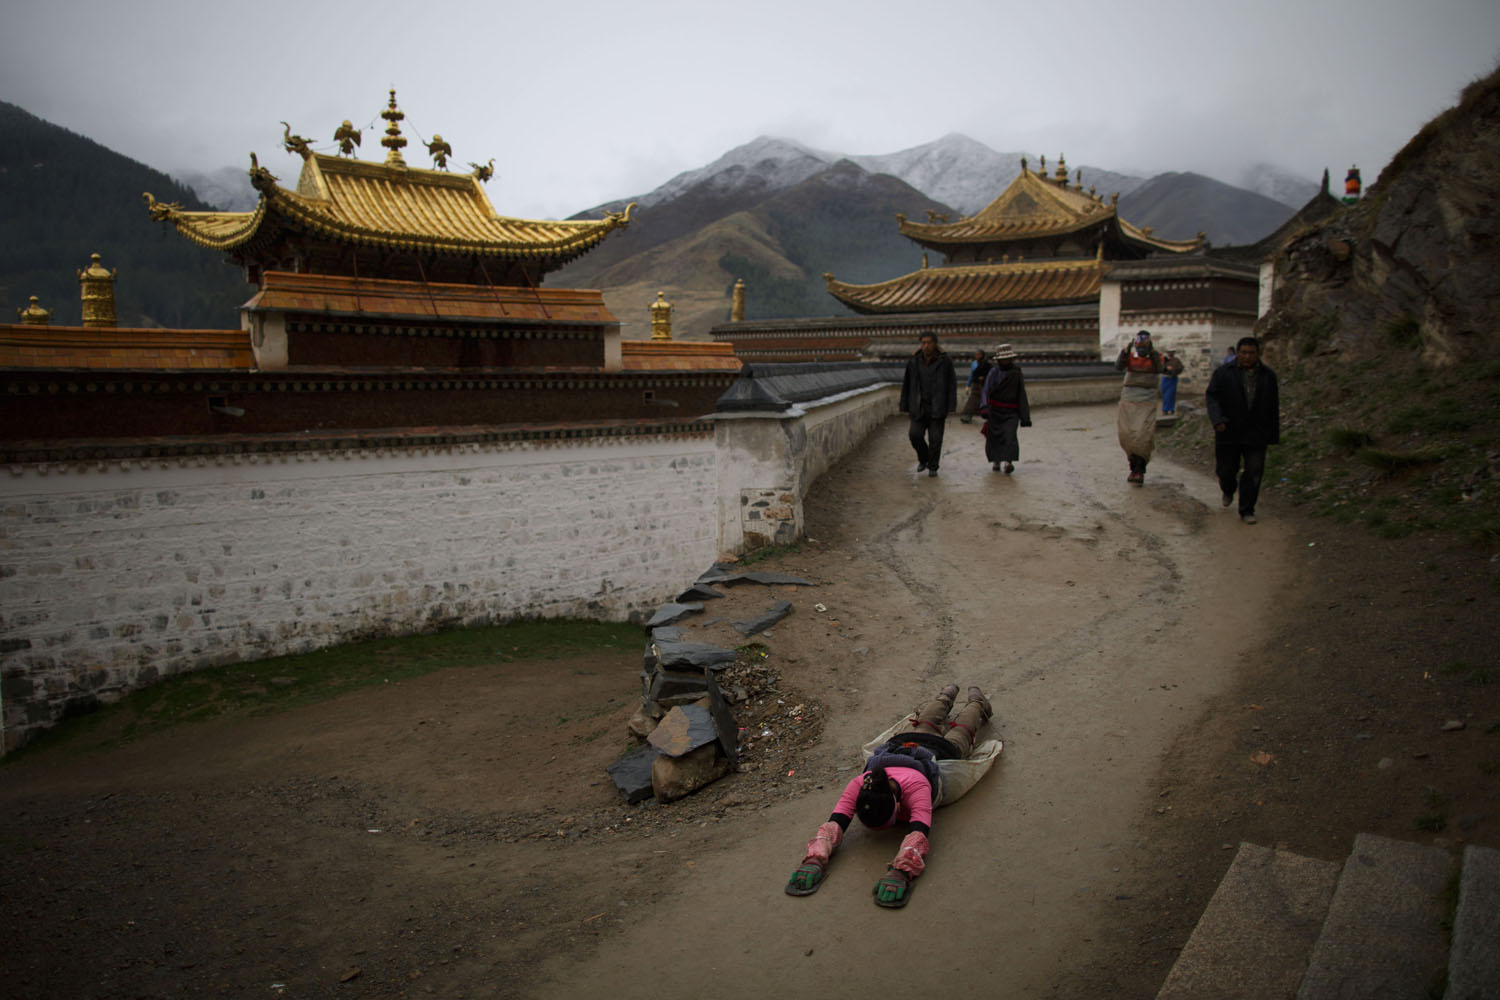 May 17, 2013. A Tibetan woman (bottom) prostrates near Labrang monastery in Xiahe, Gansu province, a flashpoint for many Tibetan protests against Chinese authorities.